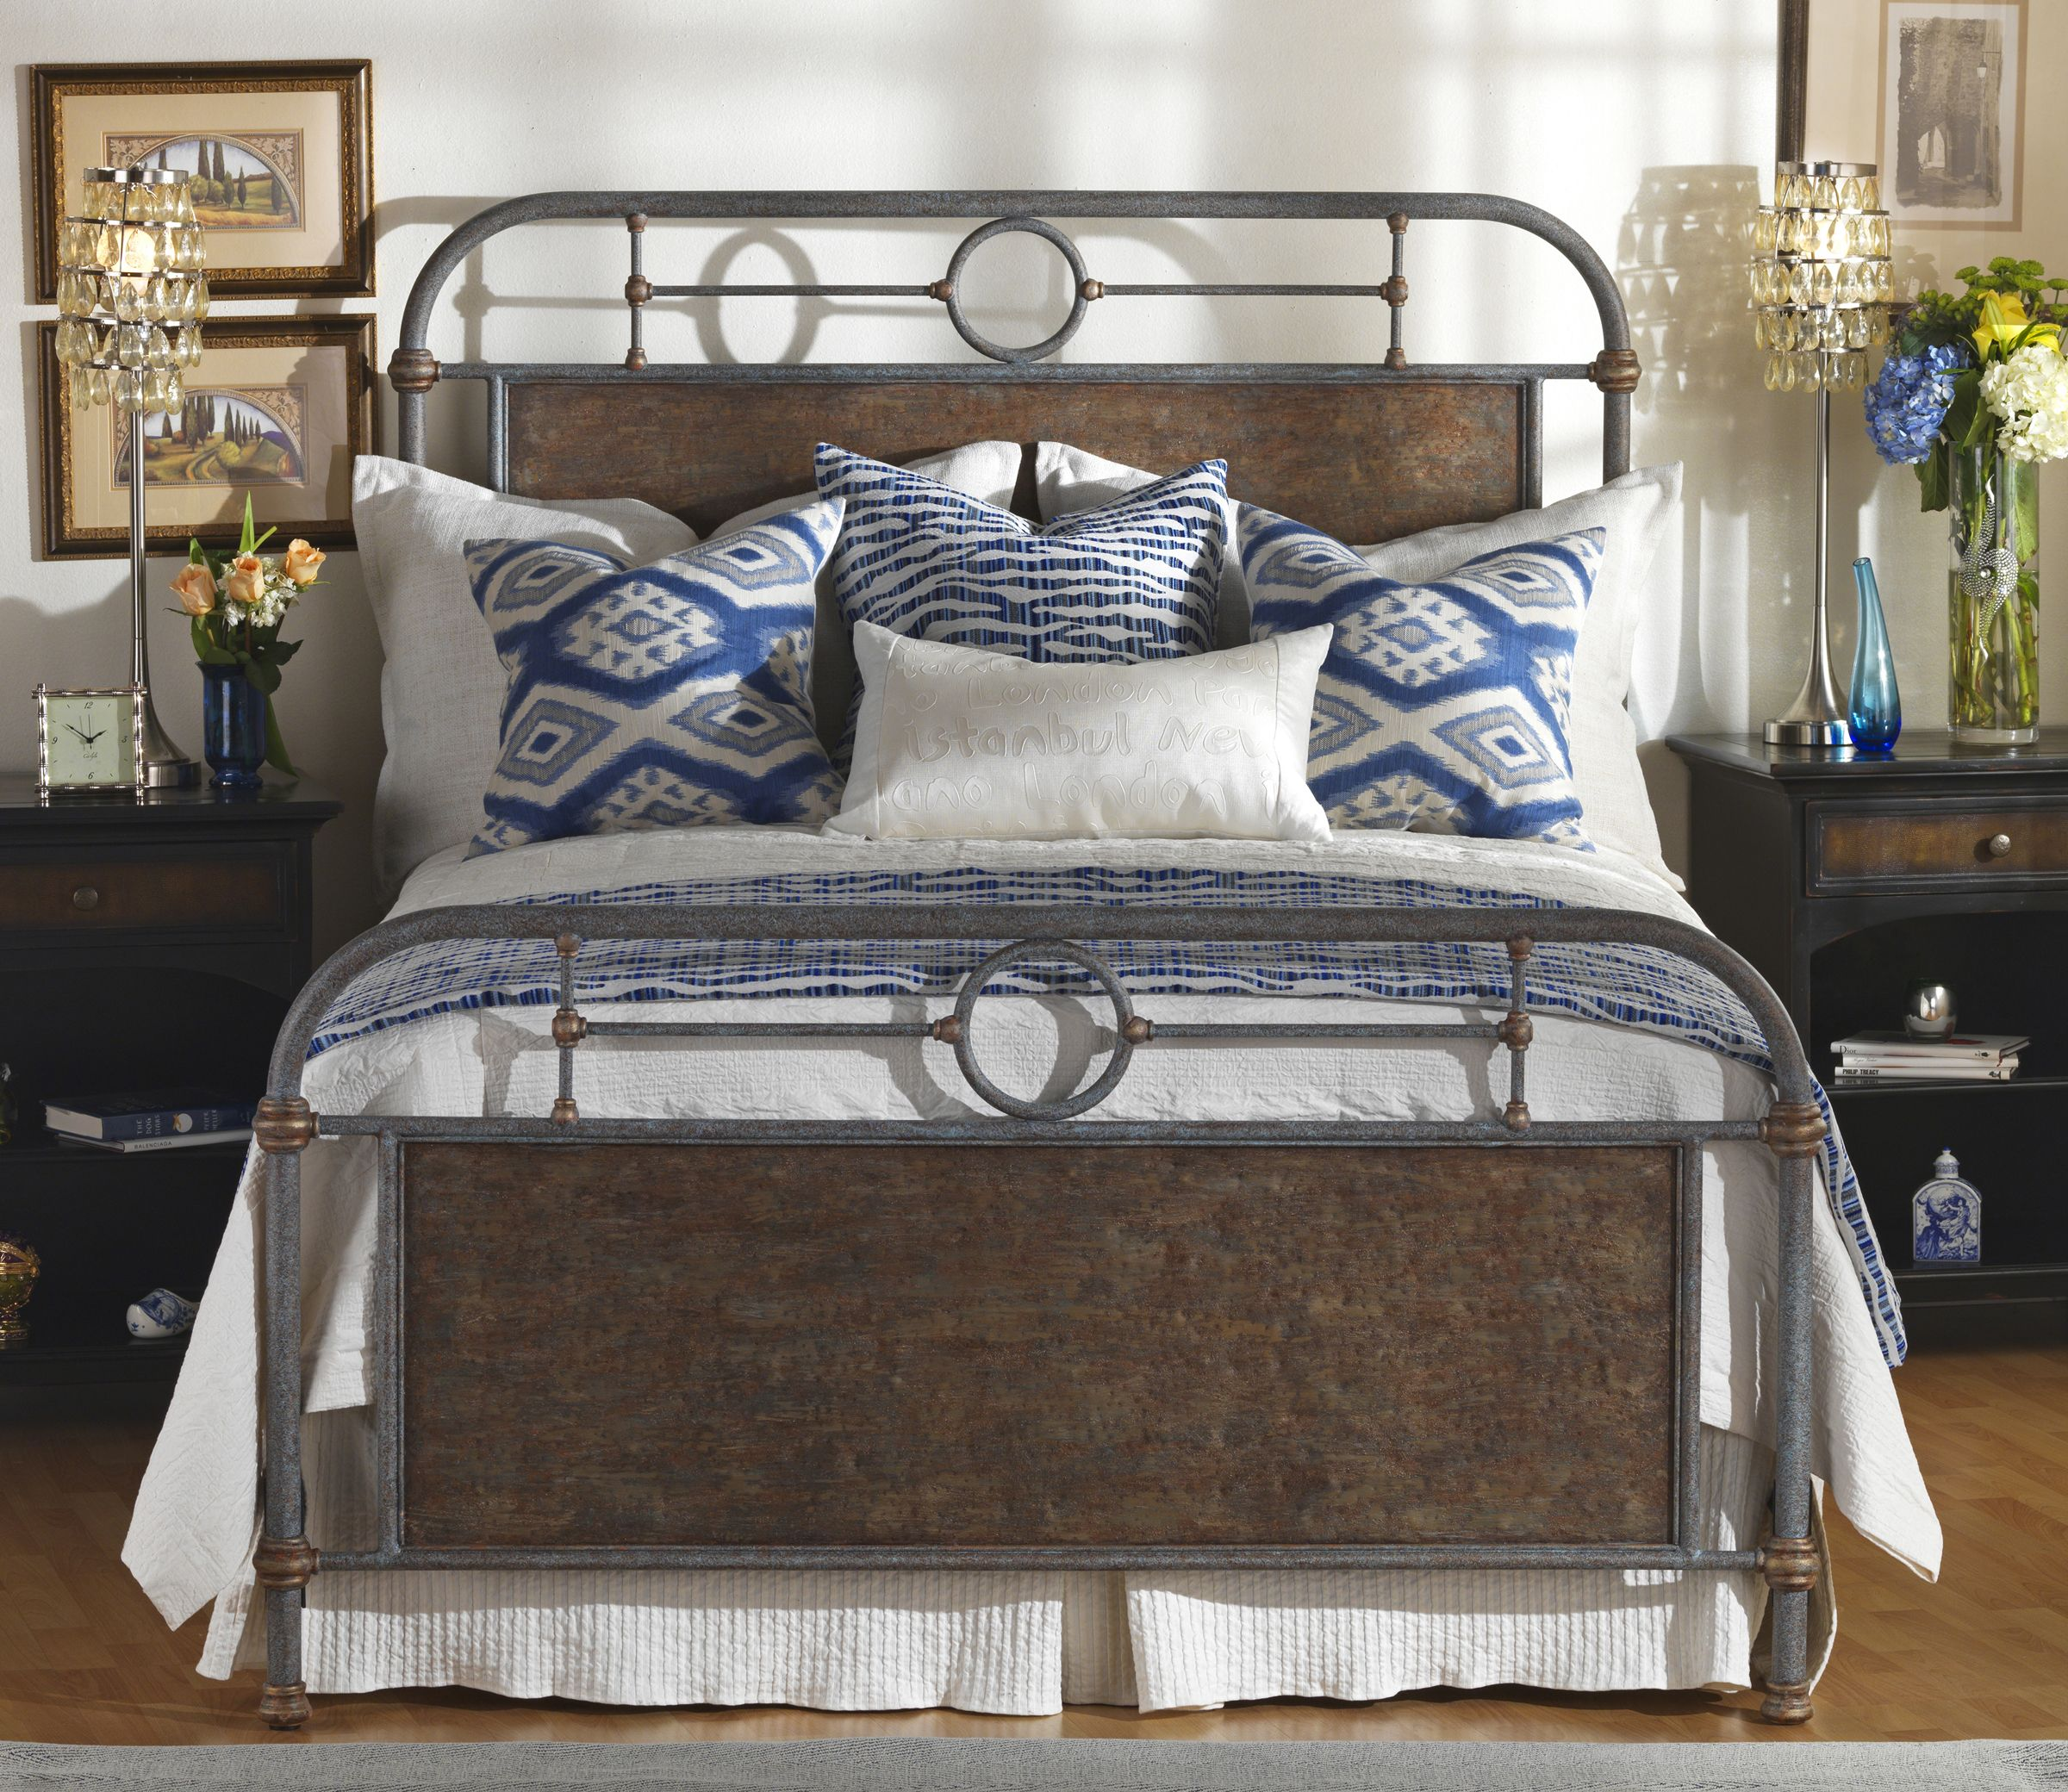 Danville Wesley Allen beds are iron and hand